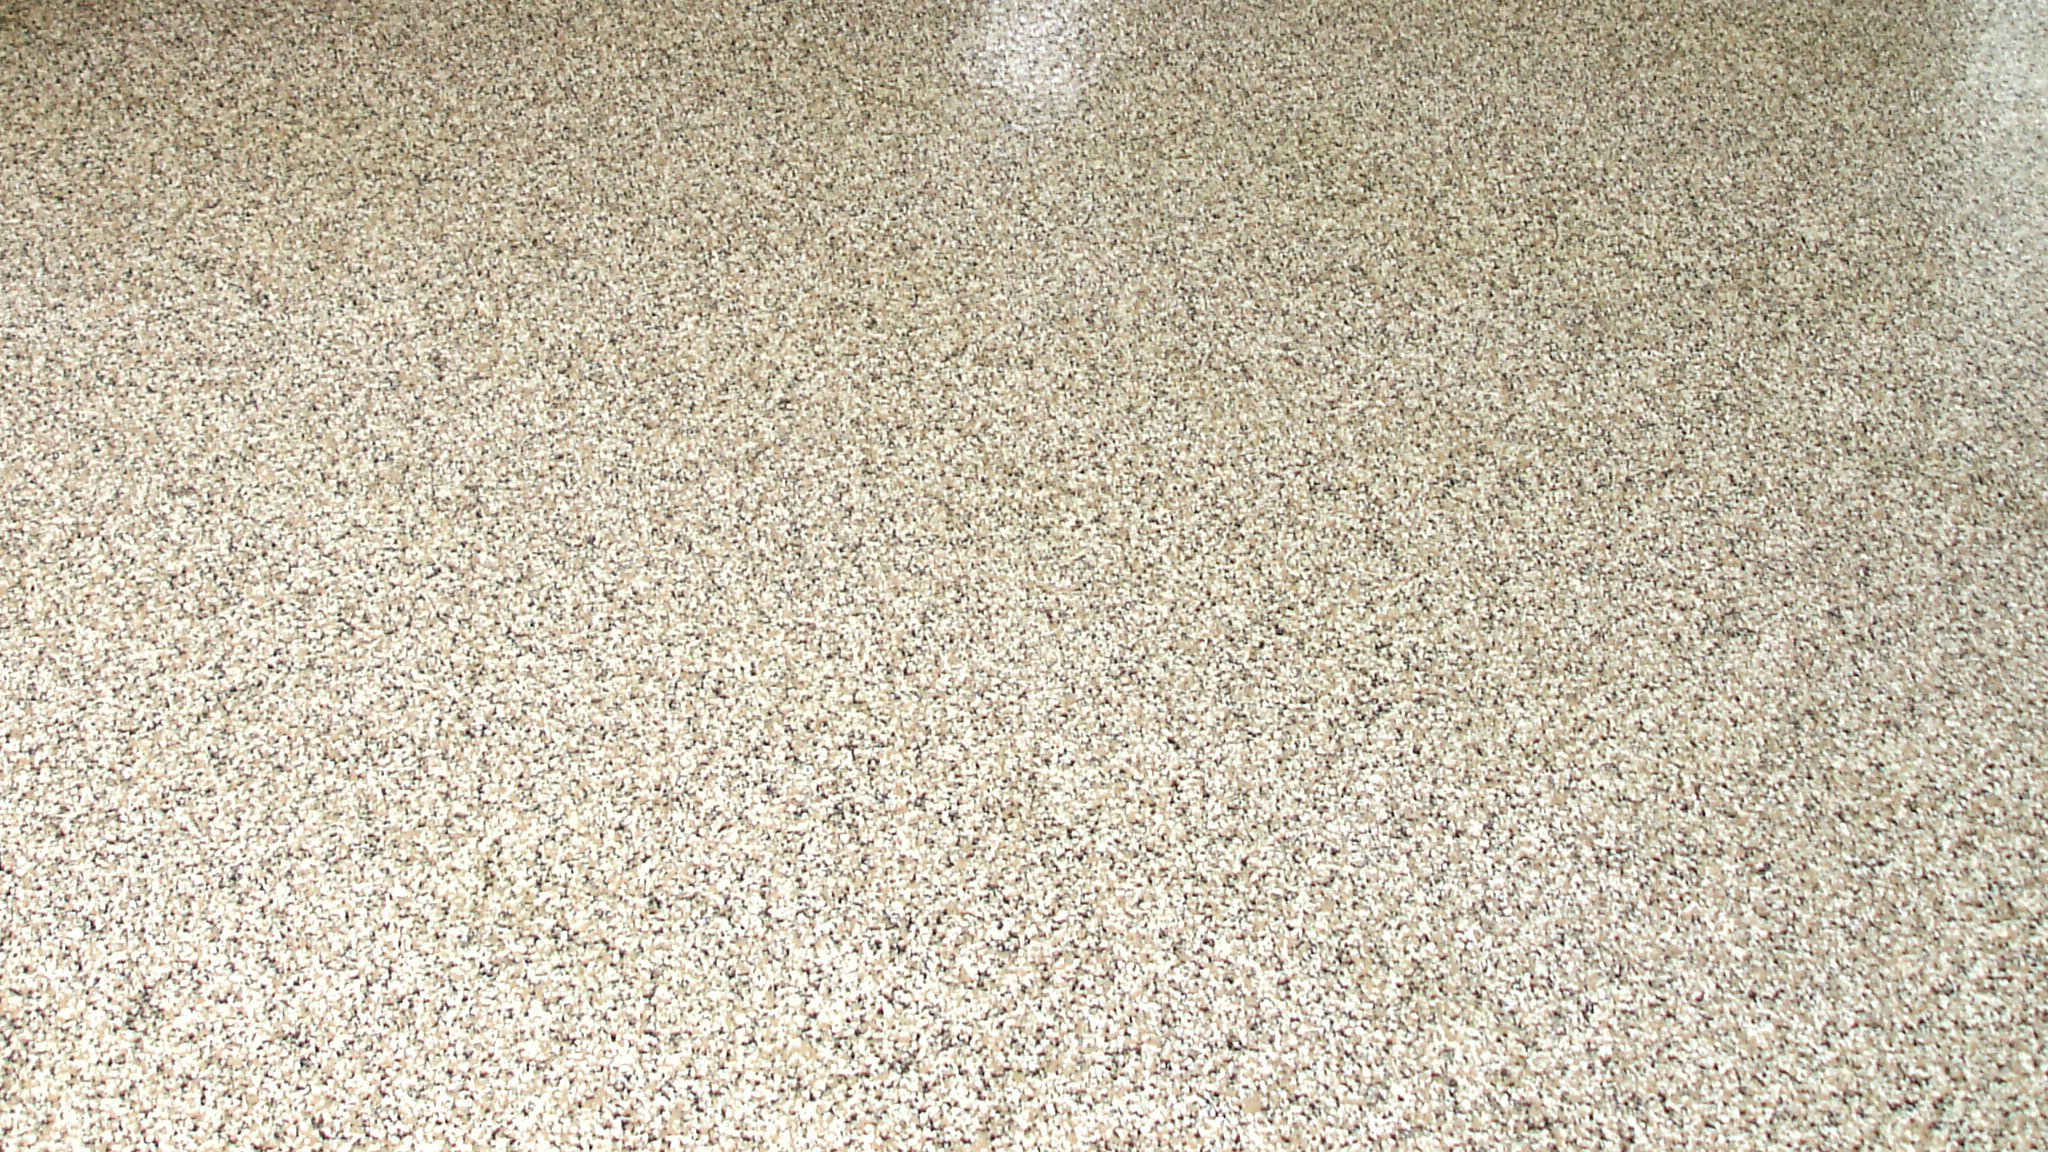 <h2>Decorative Concrete Floors</h2><p>You can choose among a variety of stylish decorative concrete floors</p>